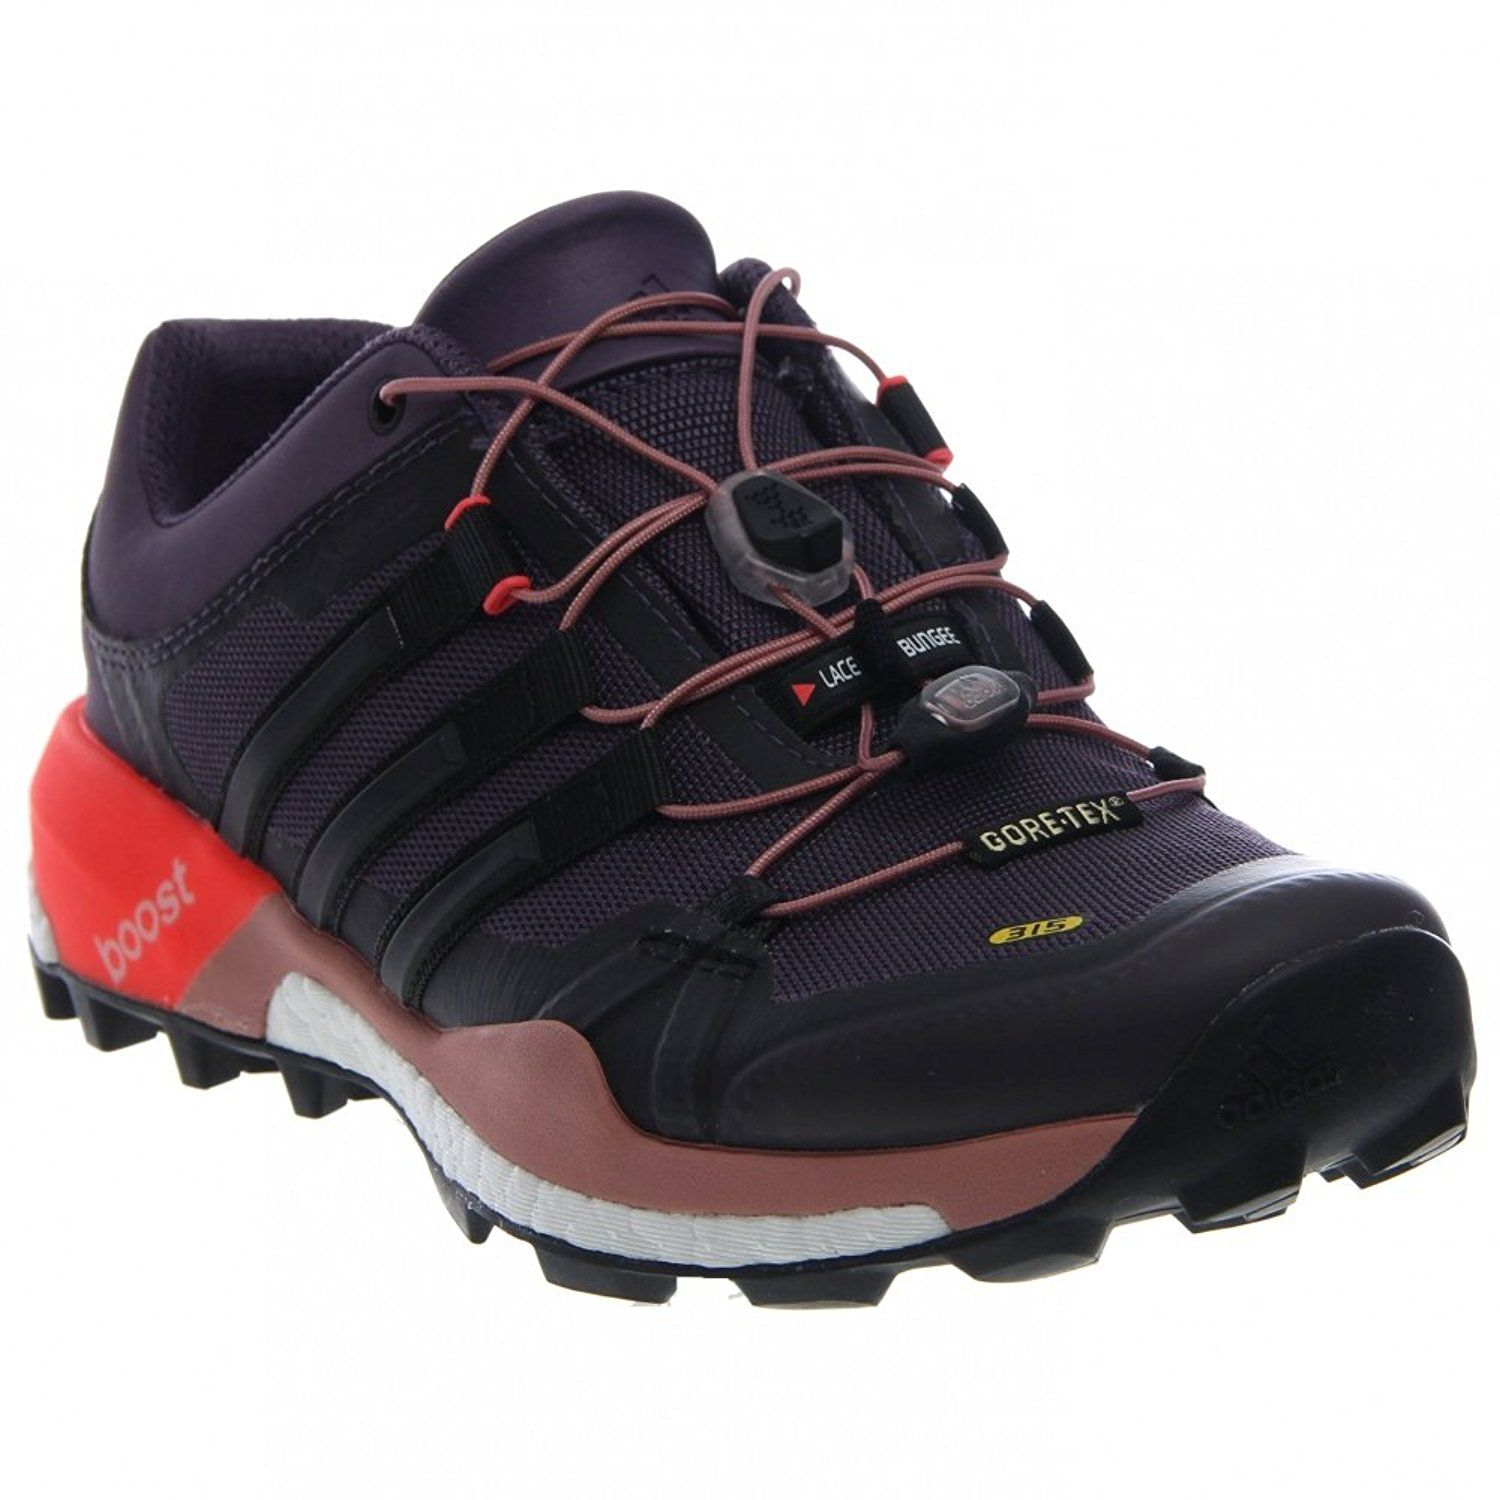 962094beb8d5 adidas B22850 Womens Terrex Boost GTX W   You can find more details by  visiting the image link.